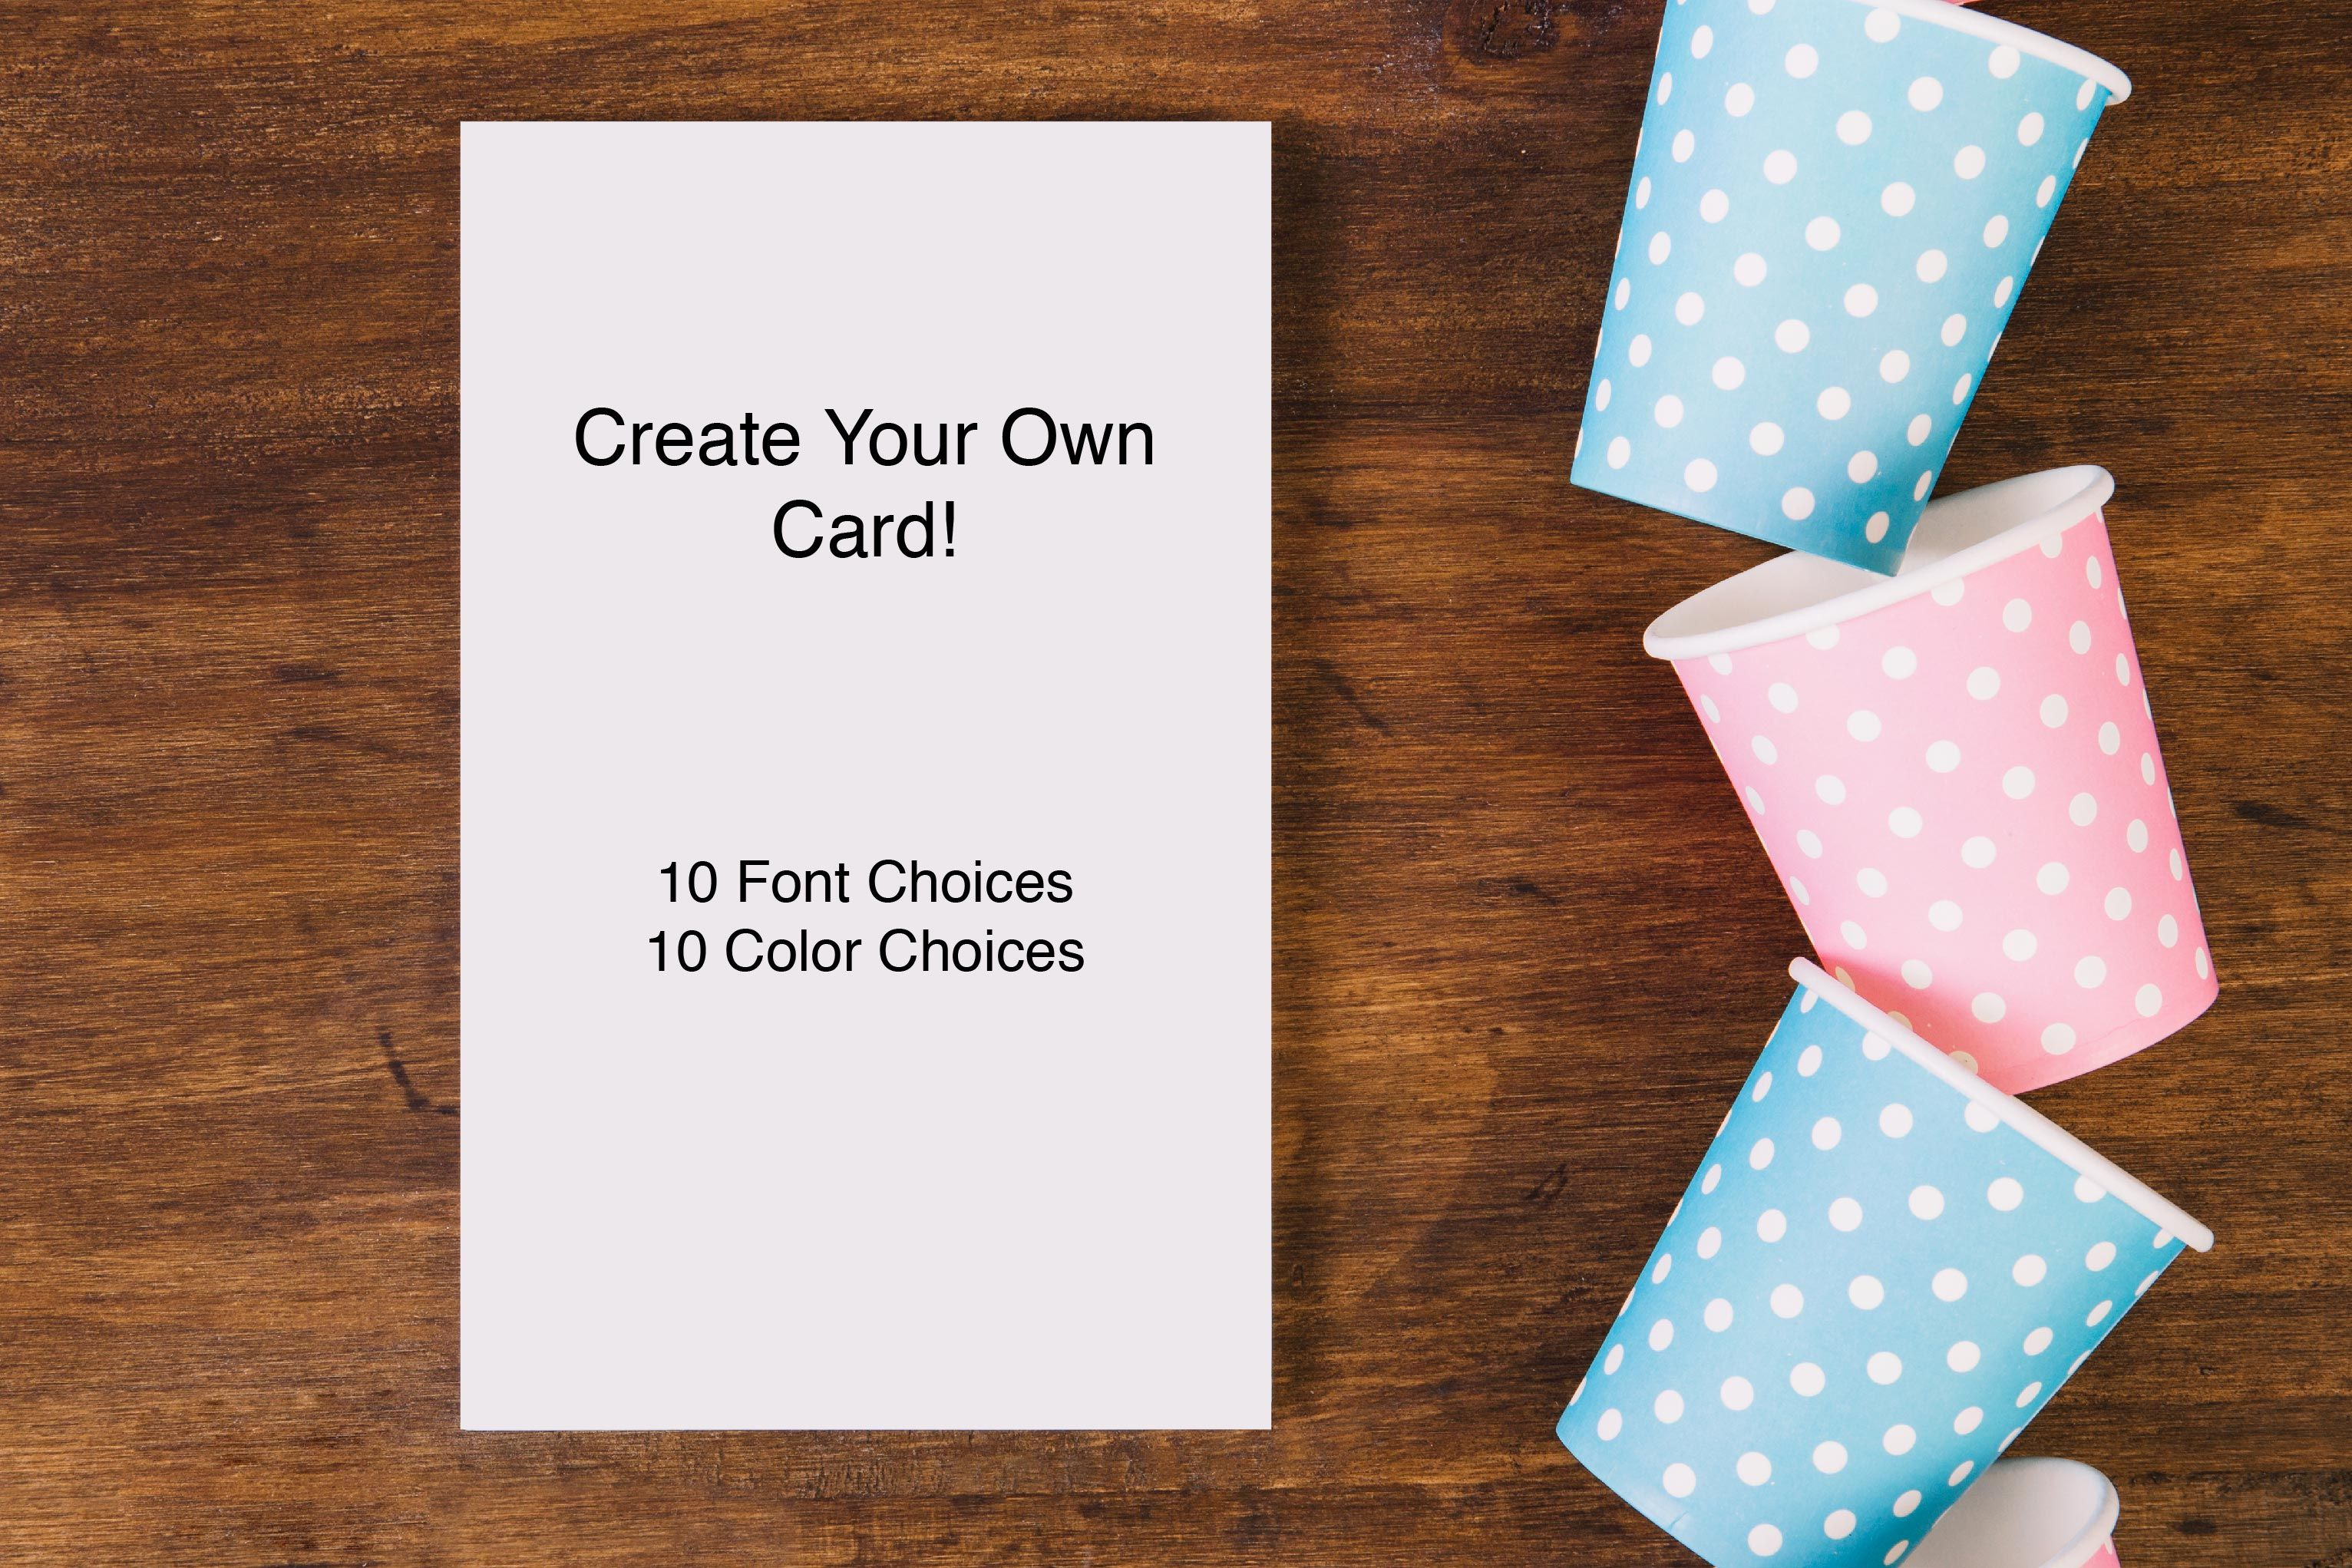 Personalized Custom Greeting Cards Choose From 10 Fonts And 10